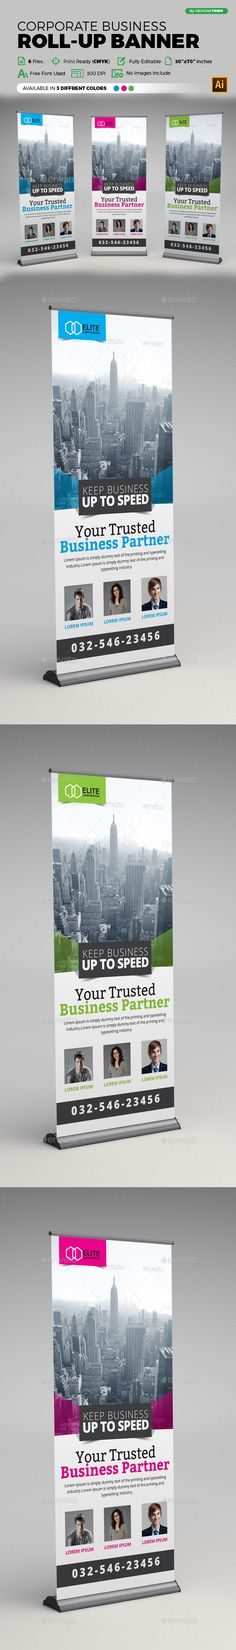 Corporate Business Roll-up Banner Template Vector EPS, AI. Download here: http://graphicriver.net/item/corporate-business-rollup-banner/15176172?ref=ksioks